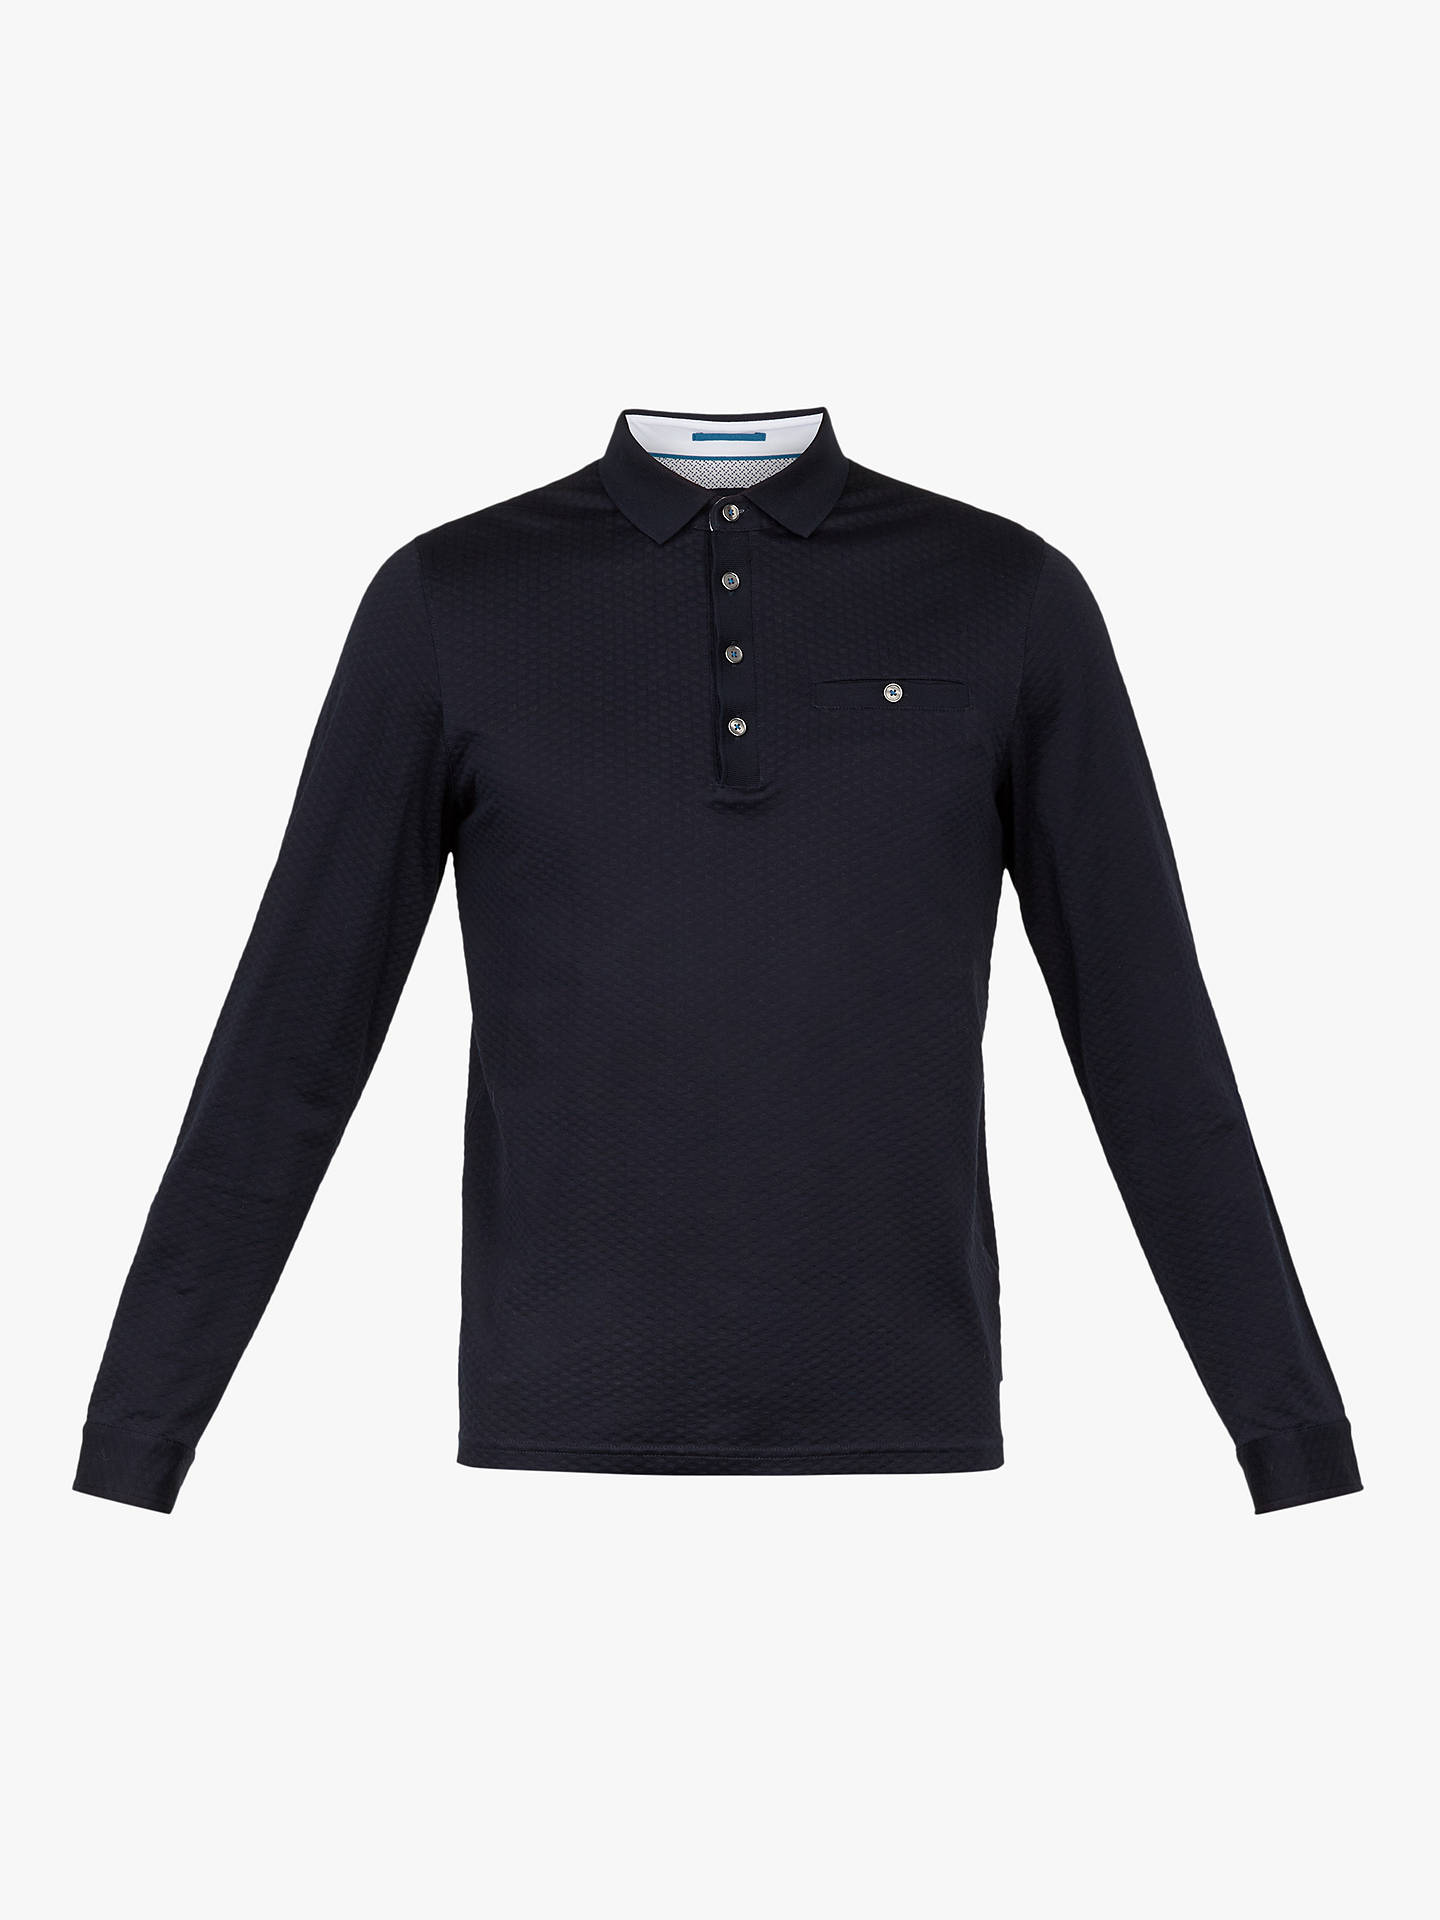 BuyTed Baker Fruitpa Long Sleeve Polo Shirt, Navy Blue, S Online at johnlewis.com